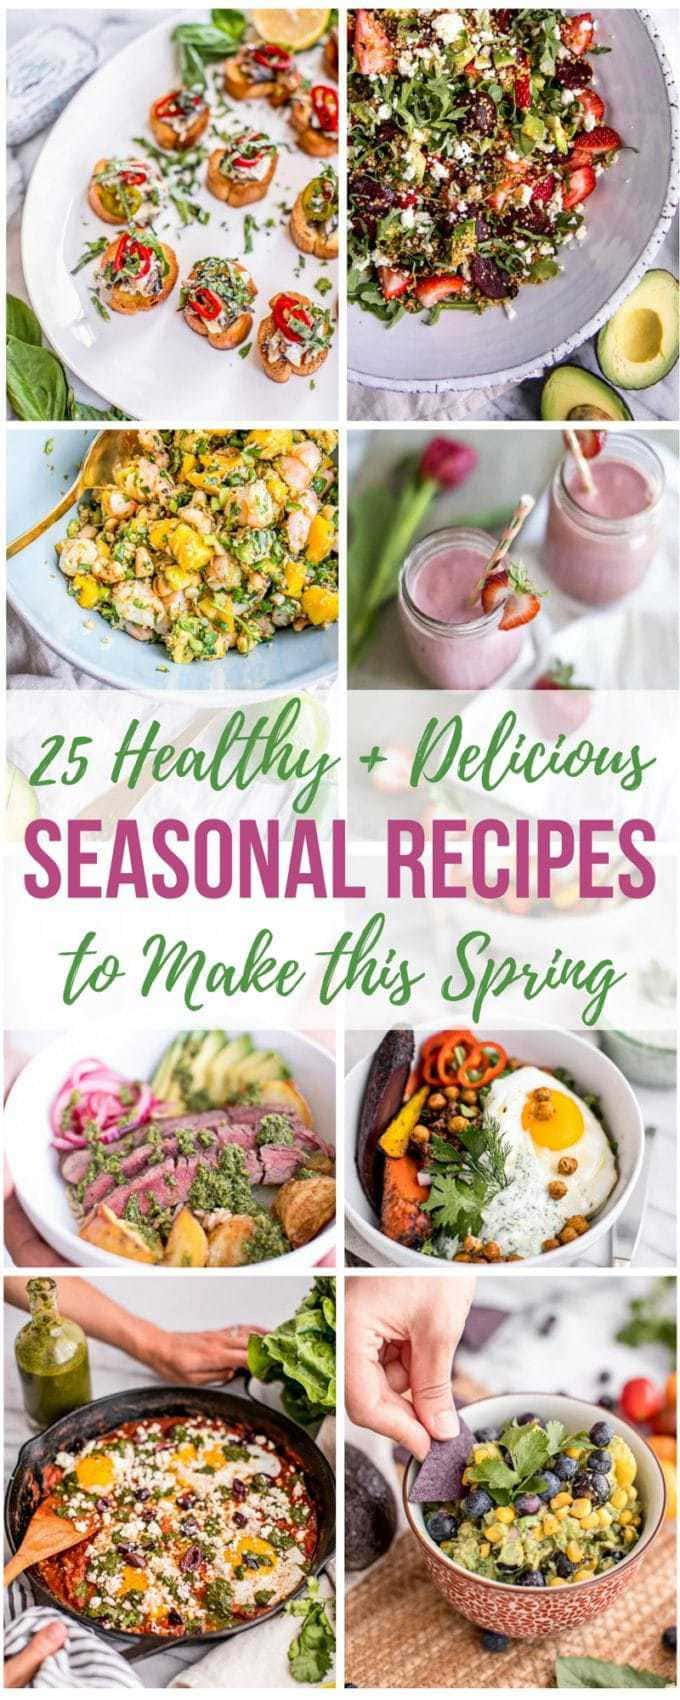 In this Guide to Spring Food, we're showcasing five of the most popular seasonal ingredients for spring: strawberries, avocado, fresh herbs (basil, cilantro and parsley), cabbage and asparagus. You'll learn about the health benefits of In Season Produce AND we've rounded up 25 delicious Spring recipes that will inspire you out of the winter blues and into your kitchen!